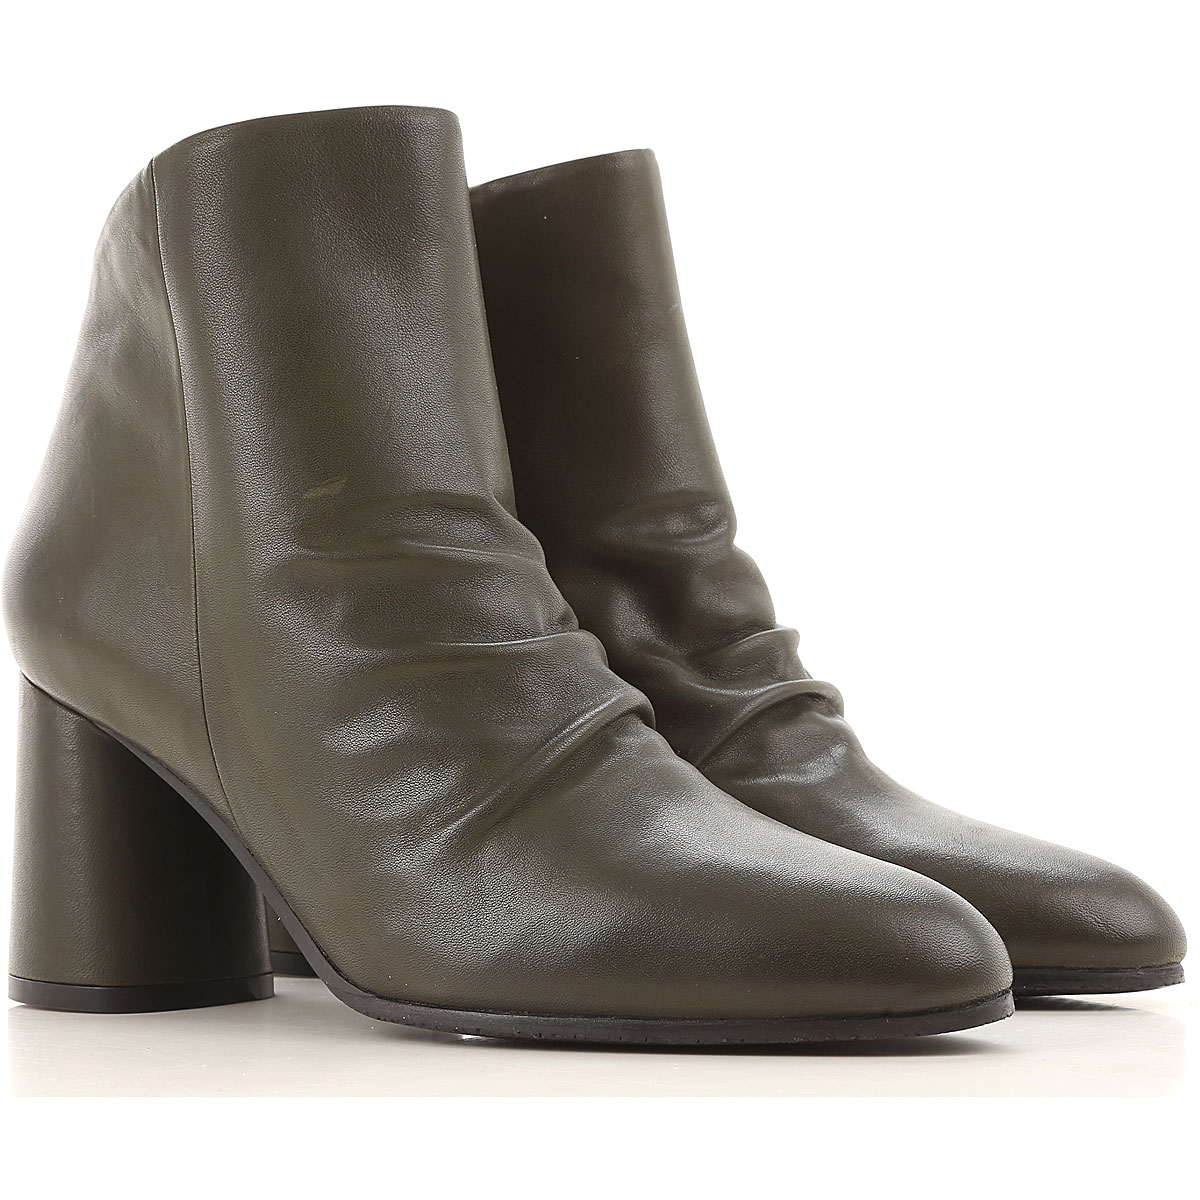 Elvio Zanon Boots for Women, Booties On Sale in Outlet, Forest Green, Nappa Leather, 2019, 10 7 8 9